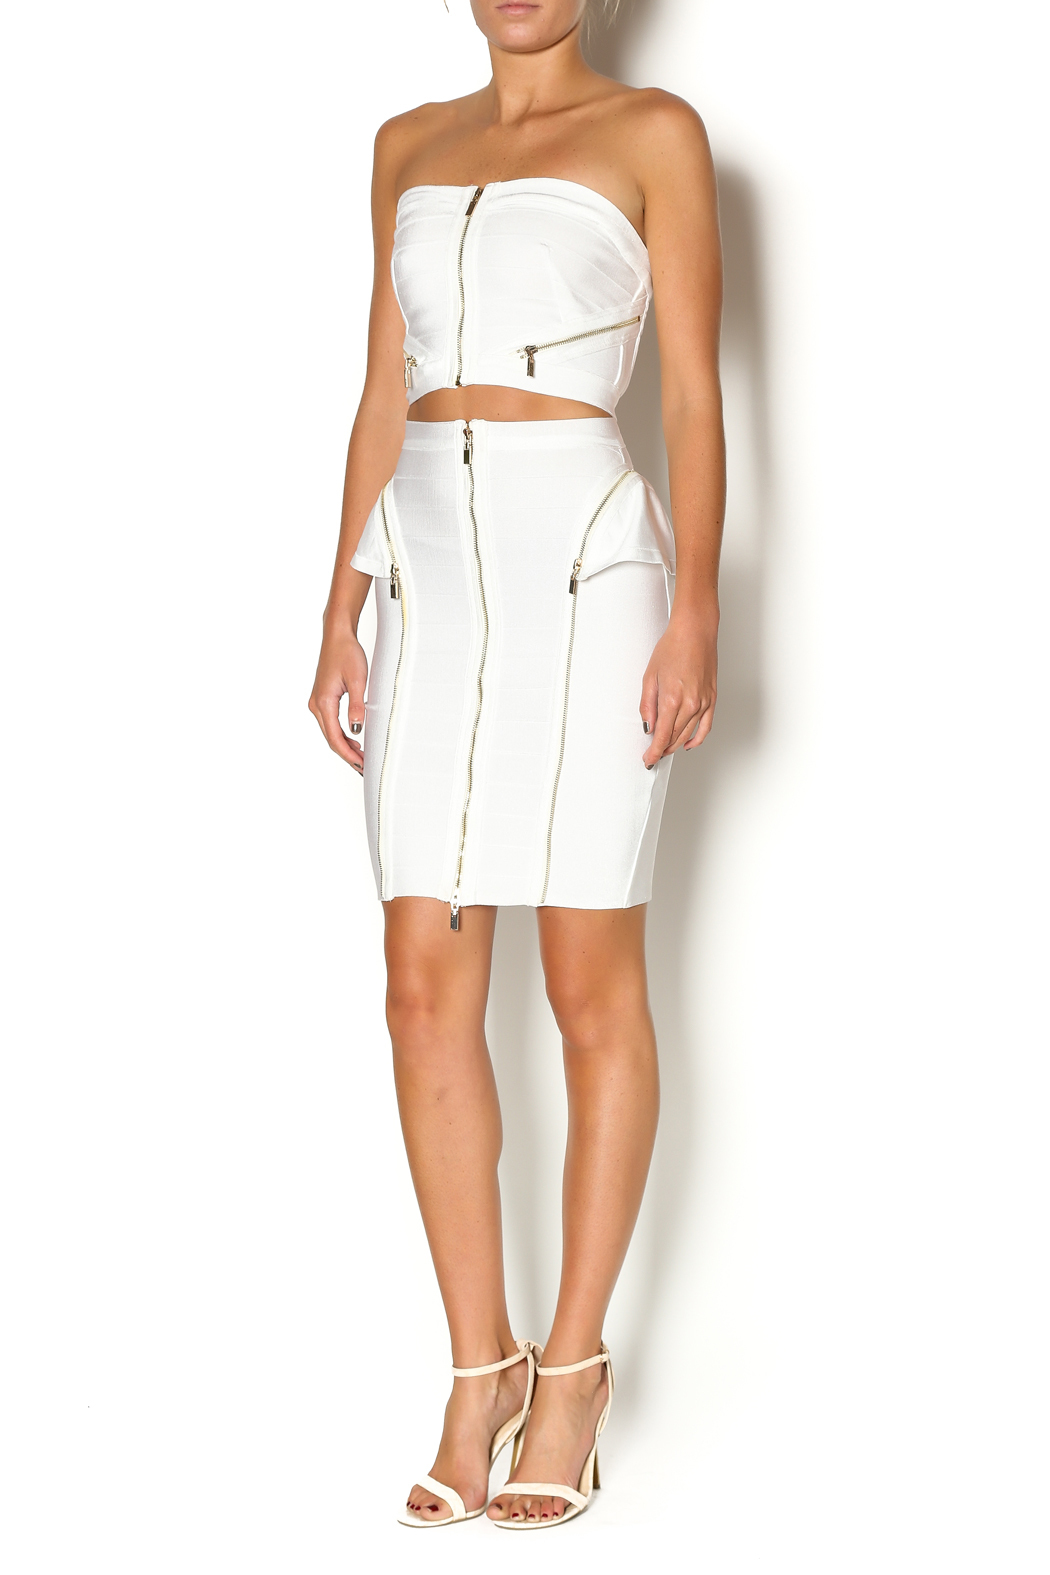 Wow Couture Two Piece Bandage Set - Front Full Image